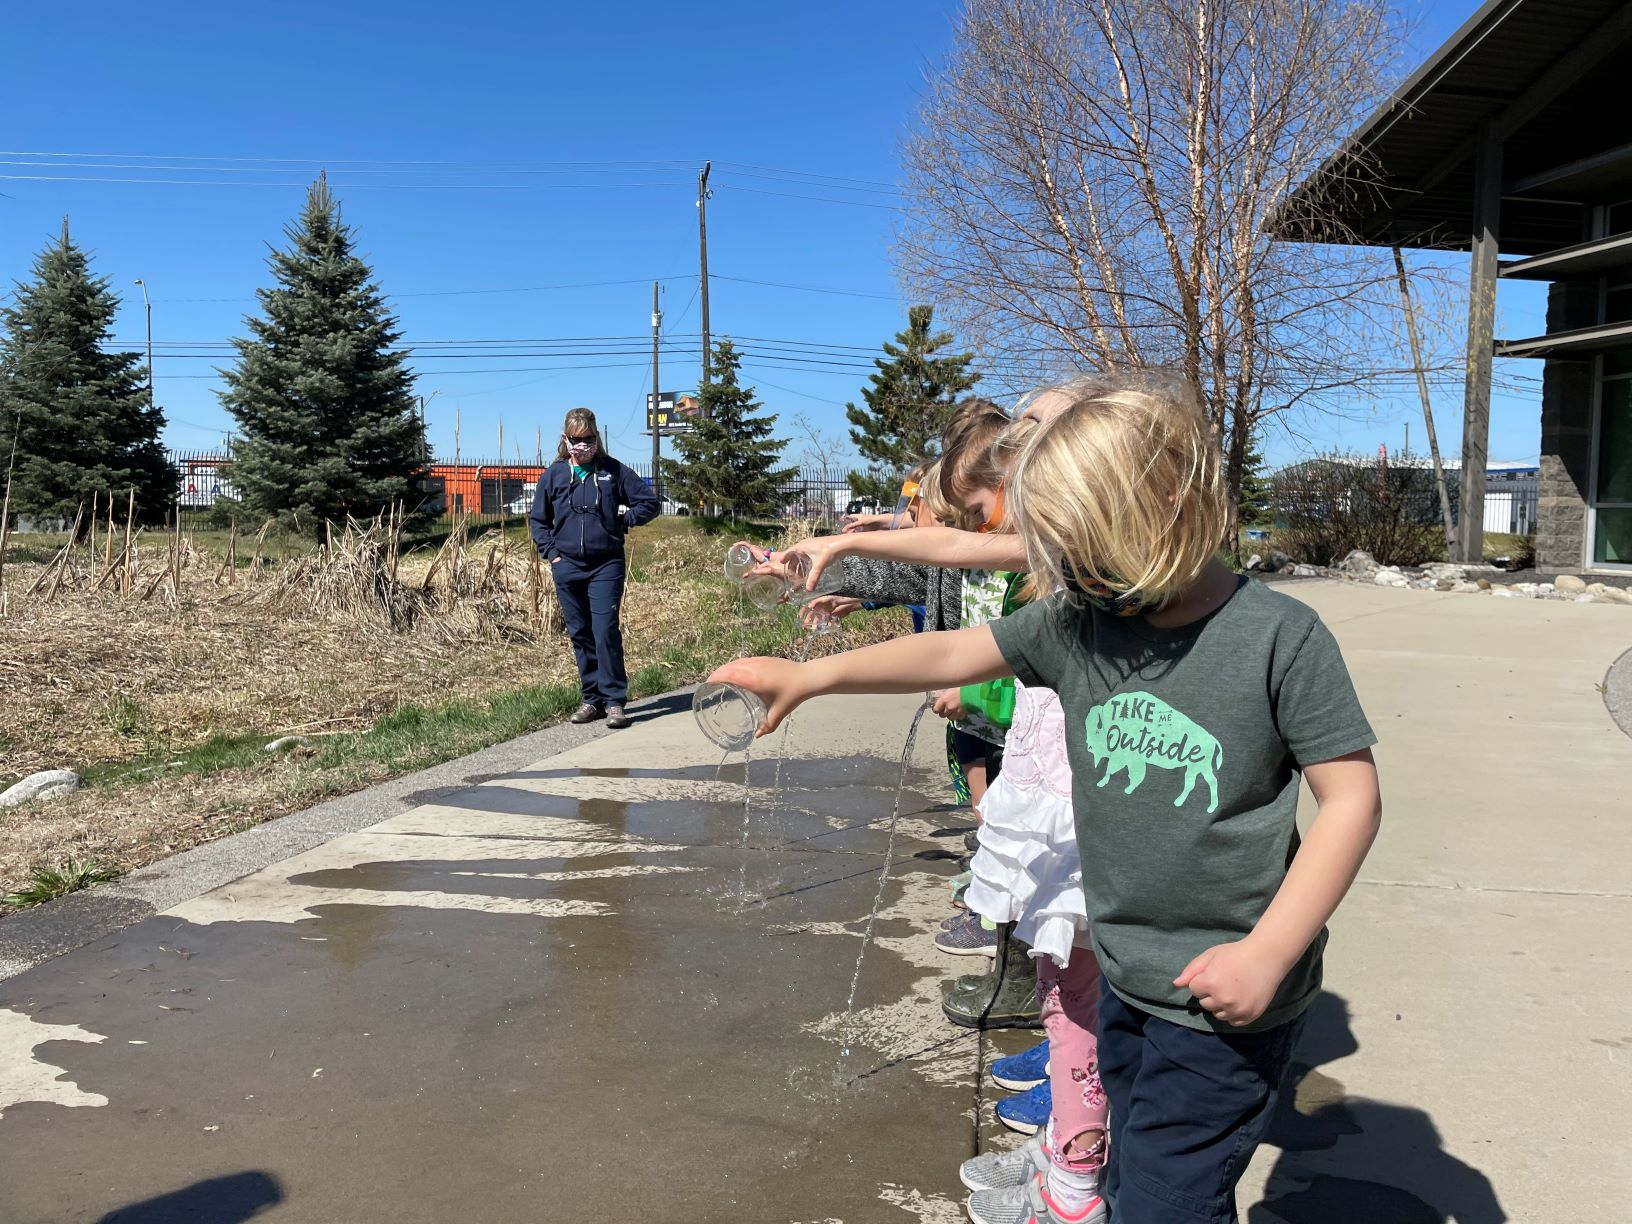 Students pouring water from cups onto the ground while learning at the Spokane County Water Resources Center. Instructor looks on.